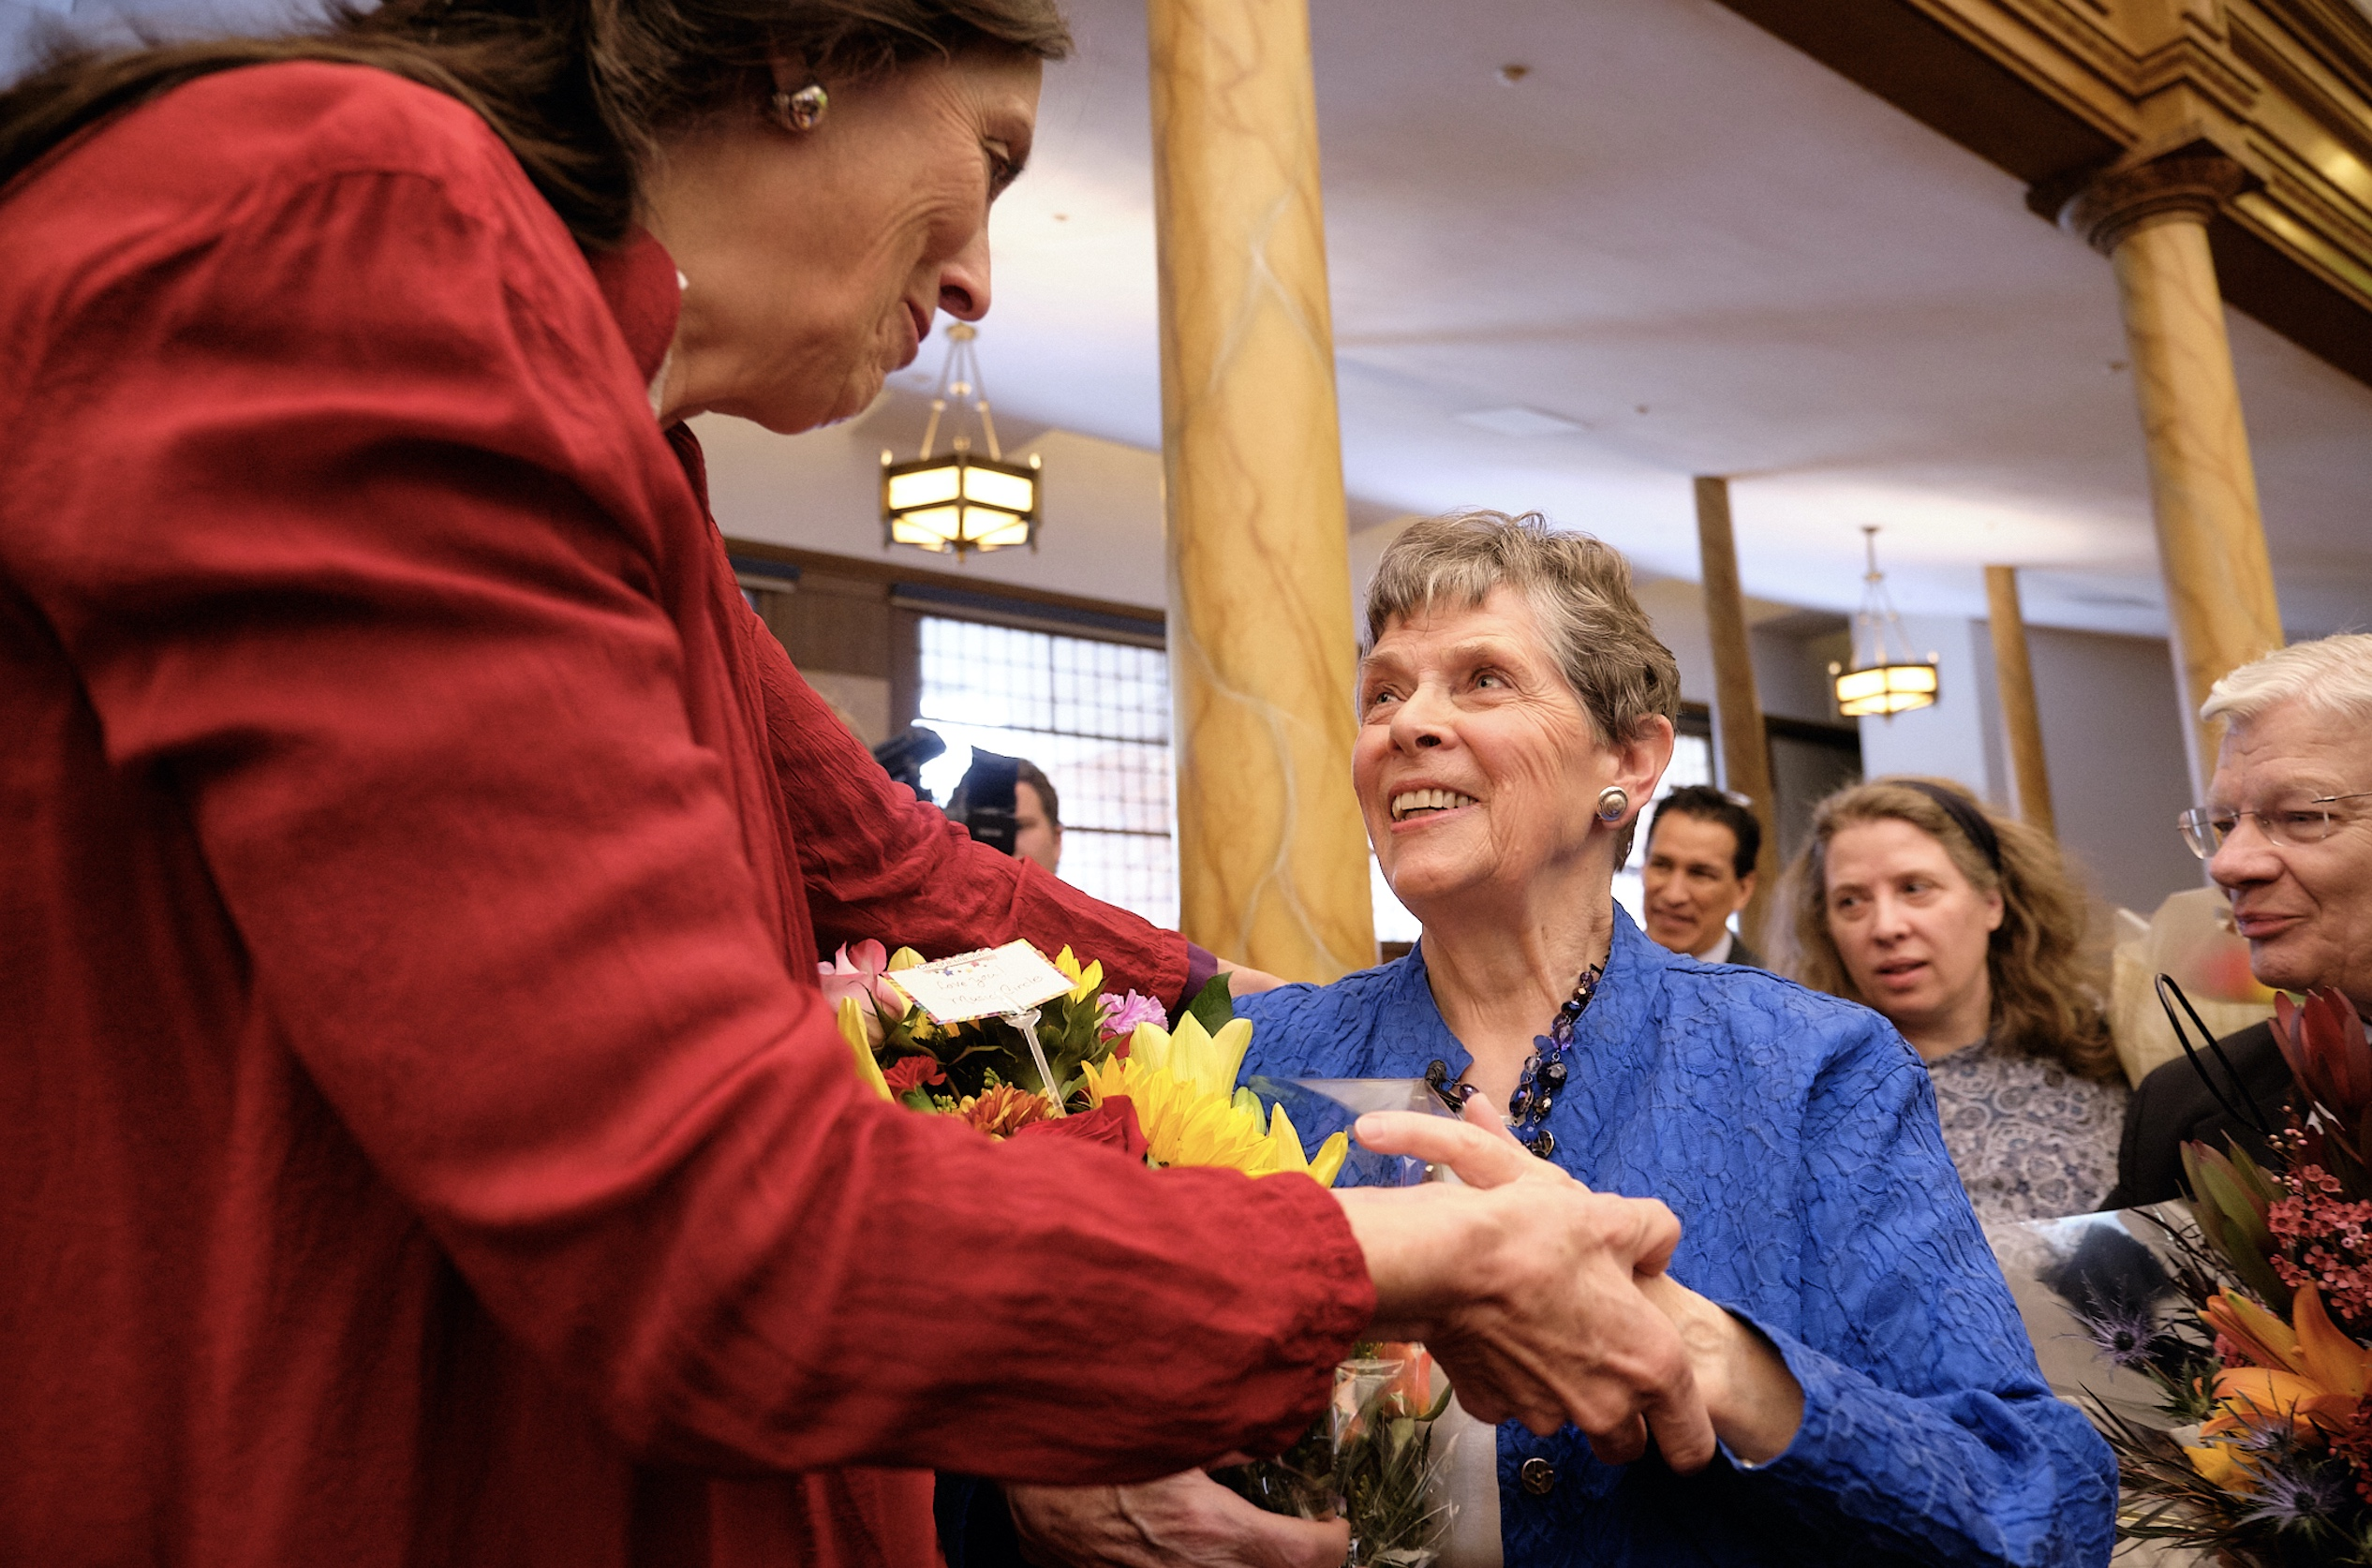 Retiring Temple Square organist Bonnie Goodliffe accepts flowers and hugs from family and friends at the Salt Lake Tabernacle on Monday, Oct. 21, 2019.